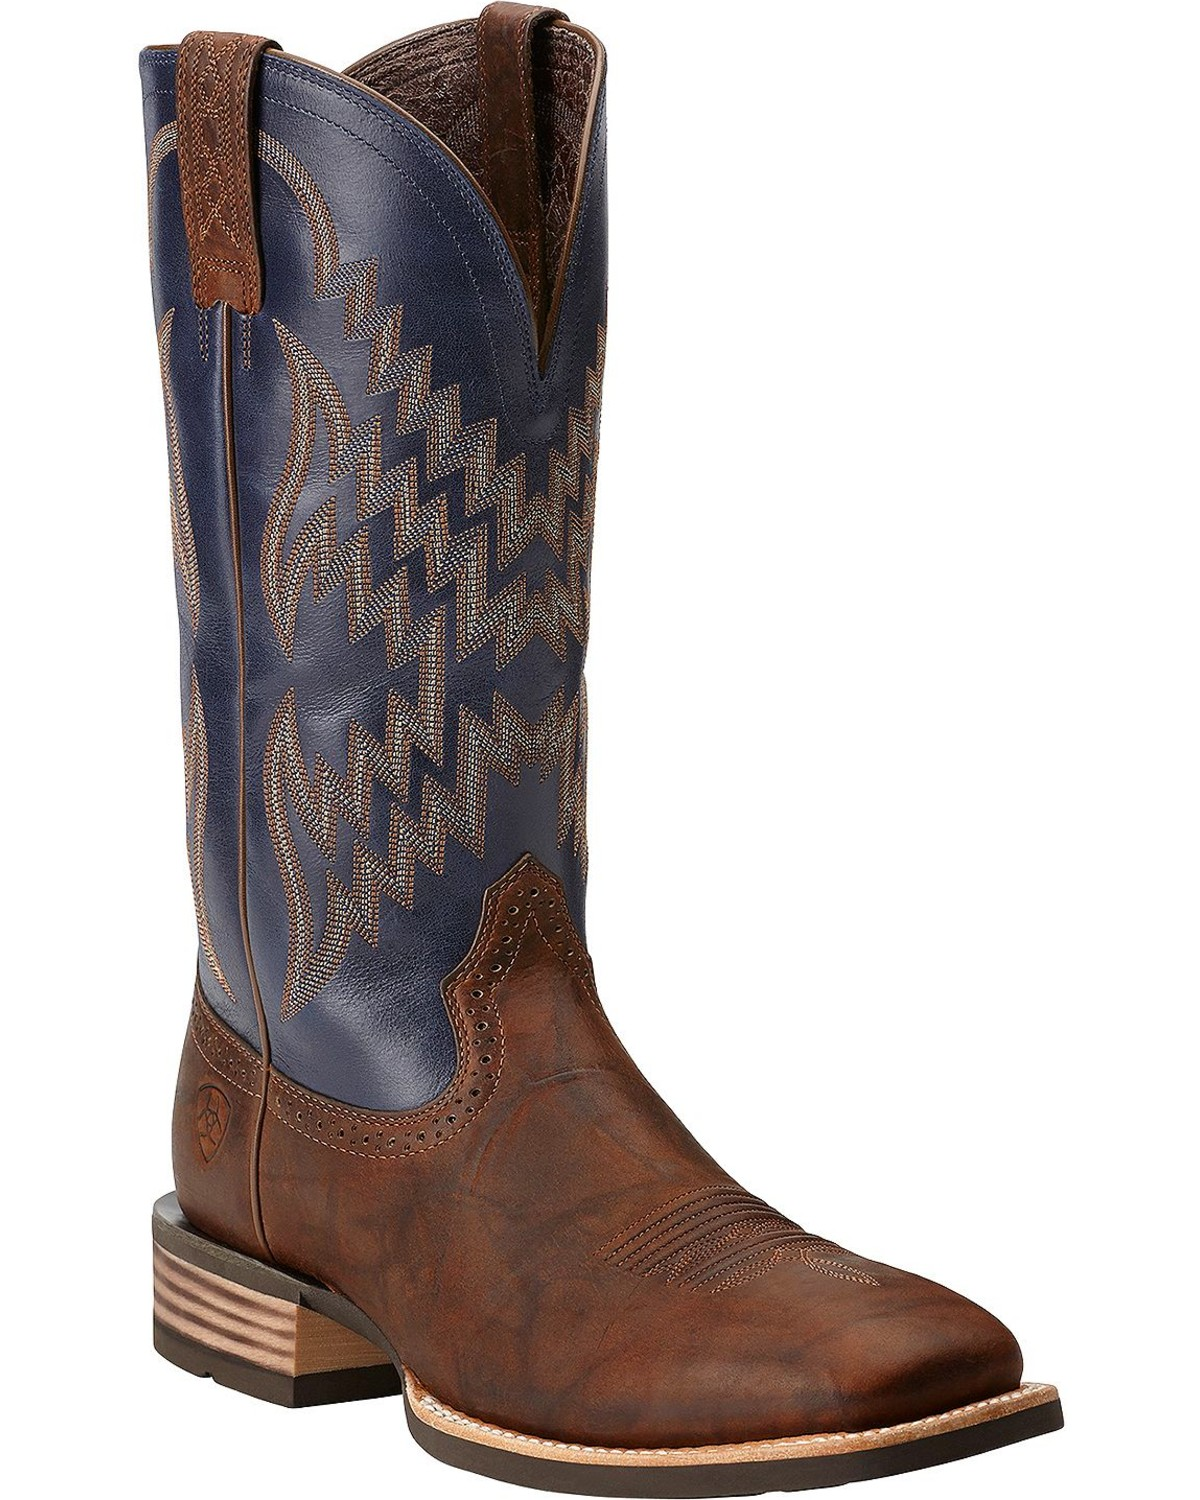 Find 35 listings related to Cowboy Boots Buy 1 Get 2 Free in Nashville on goodfilezbv.cf See reviews, photos, directions, phone numbers and more for Cowboy Boots Buy 1 Get 2 Free .